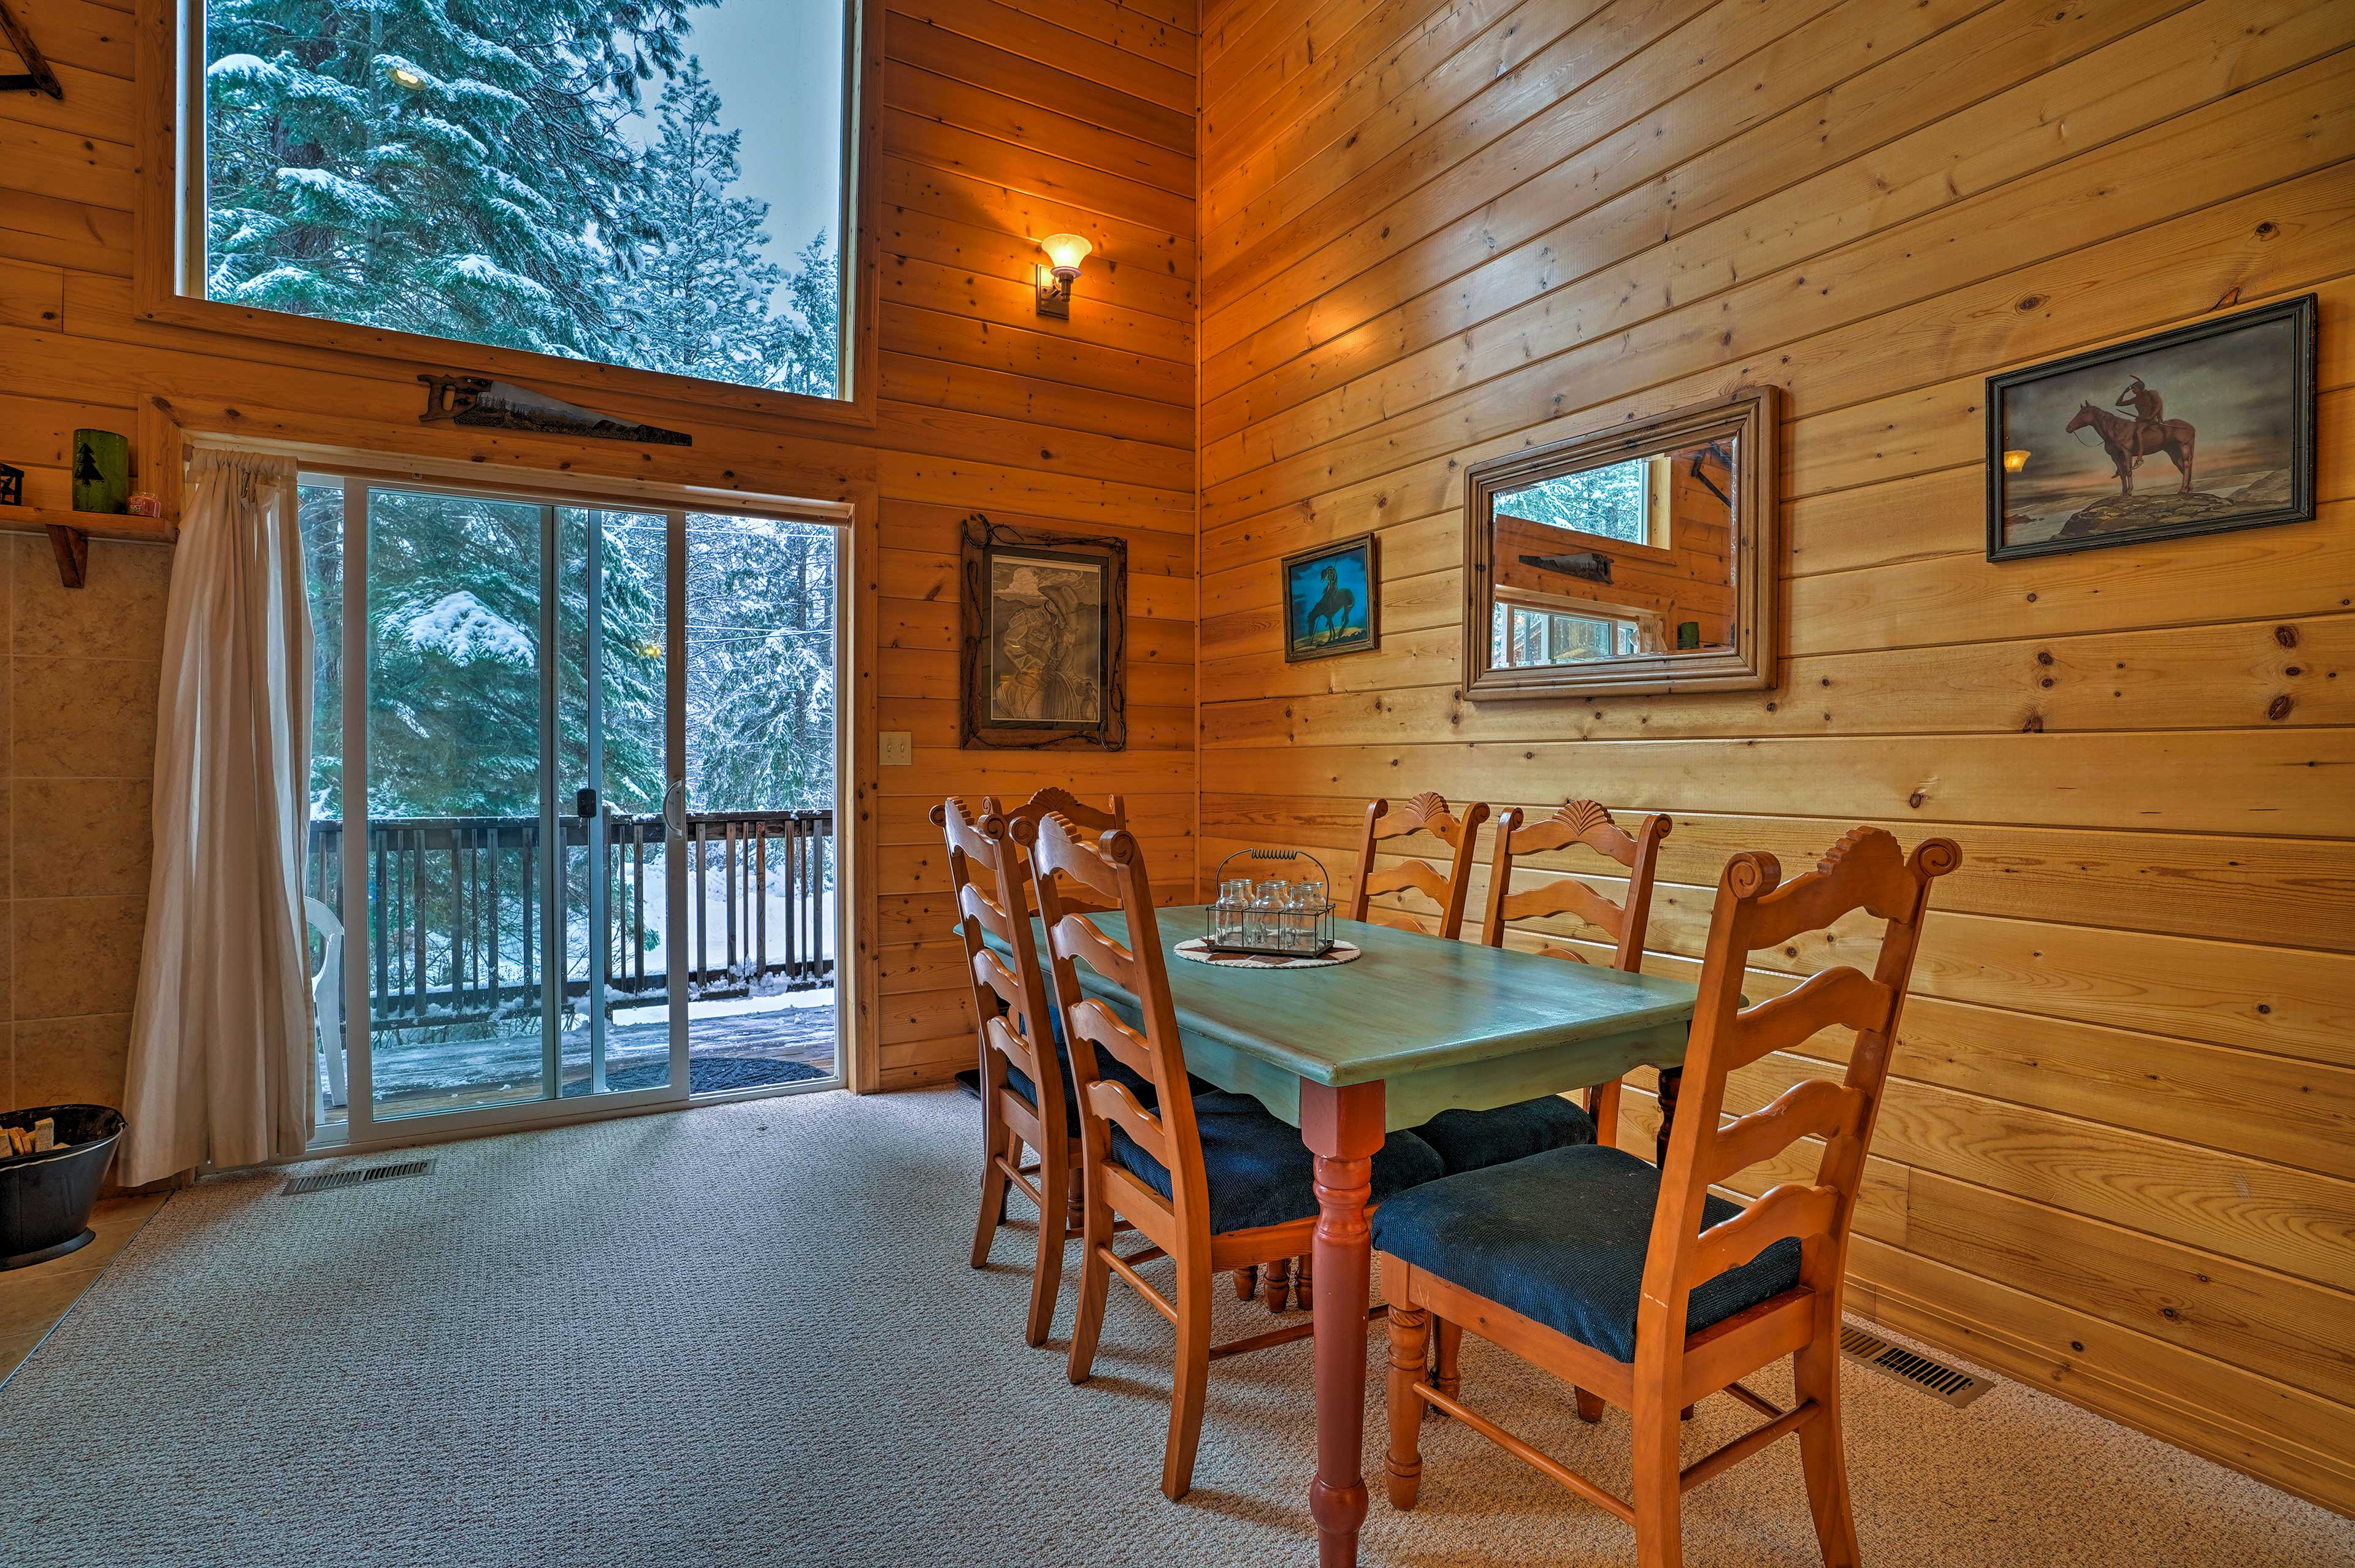 Enjoy home-cooked meals around the rustic dining room table with seating for 6.